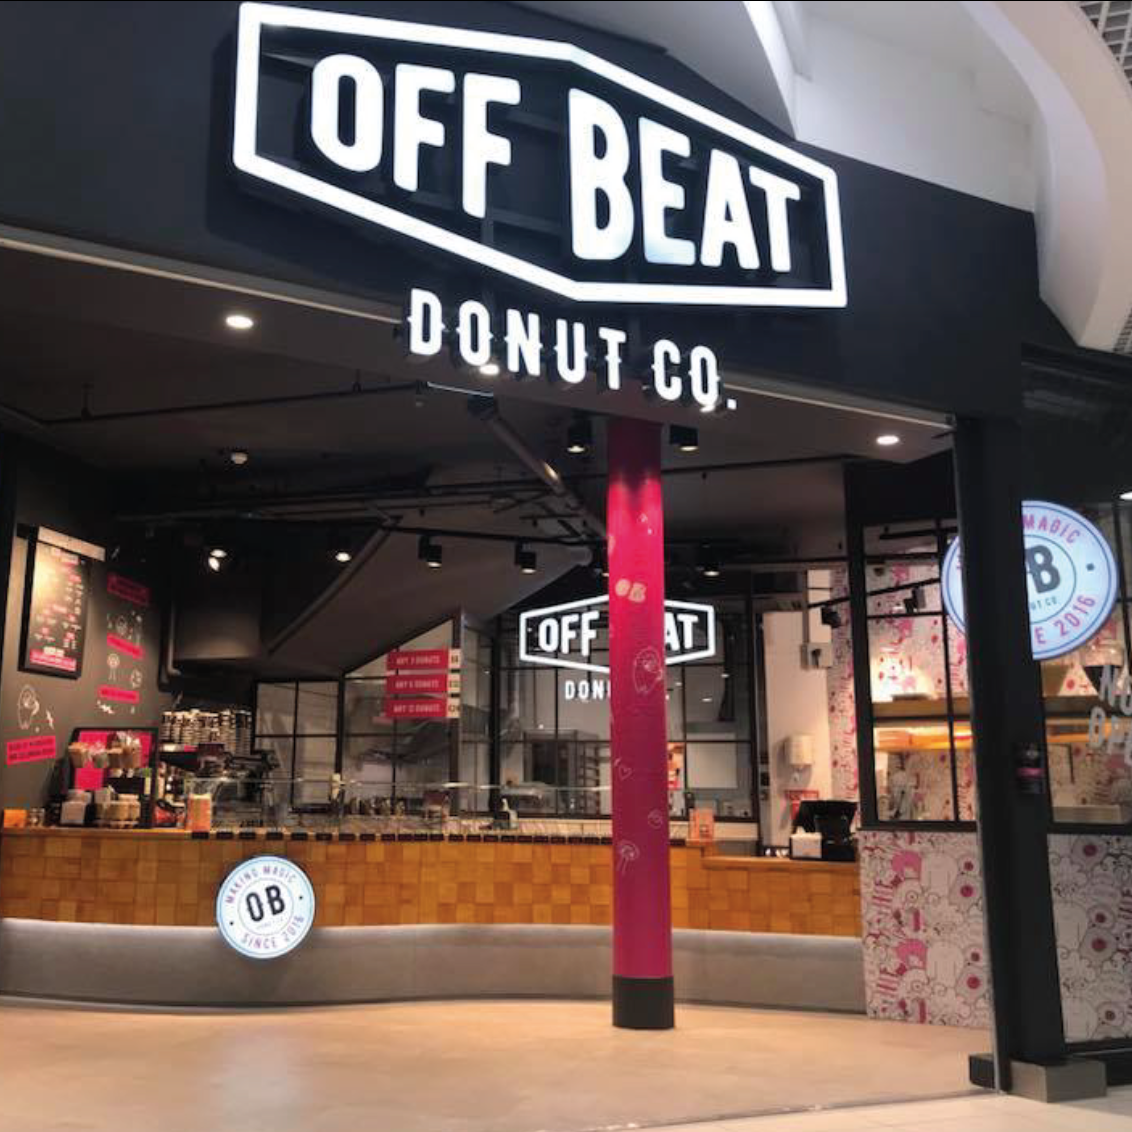 Off Beat Donut Co